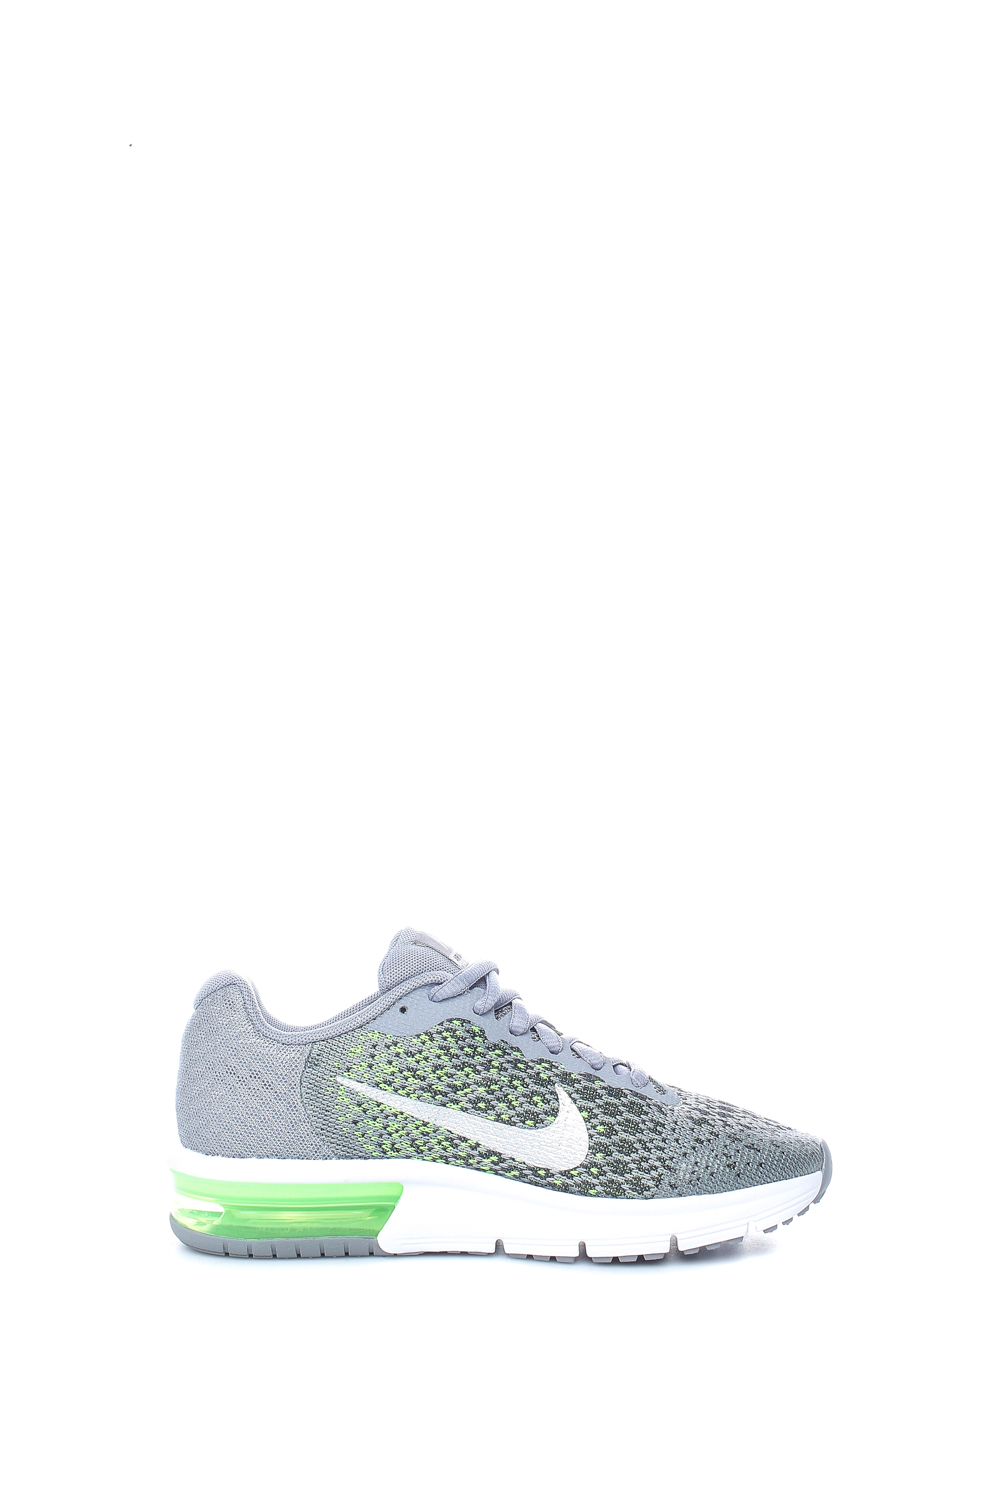 NIKE - Παιδικά παπούτσια Nike AIR MAX SEQUENT 2 (GS) γκρι - πράσινα